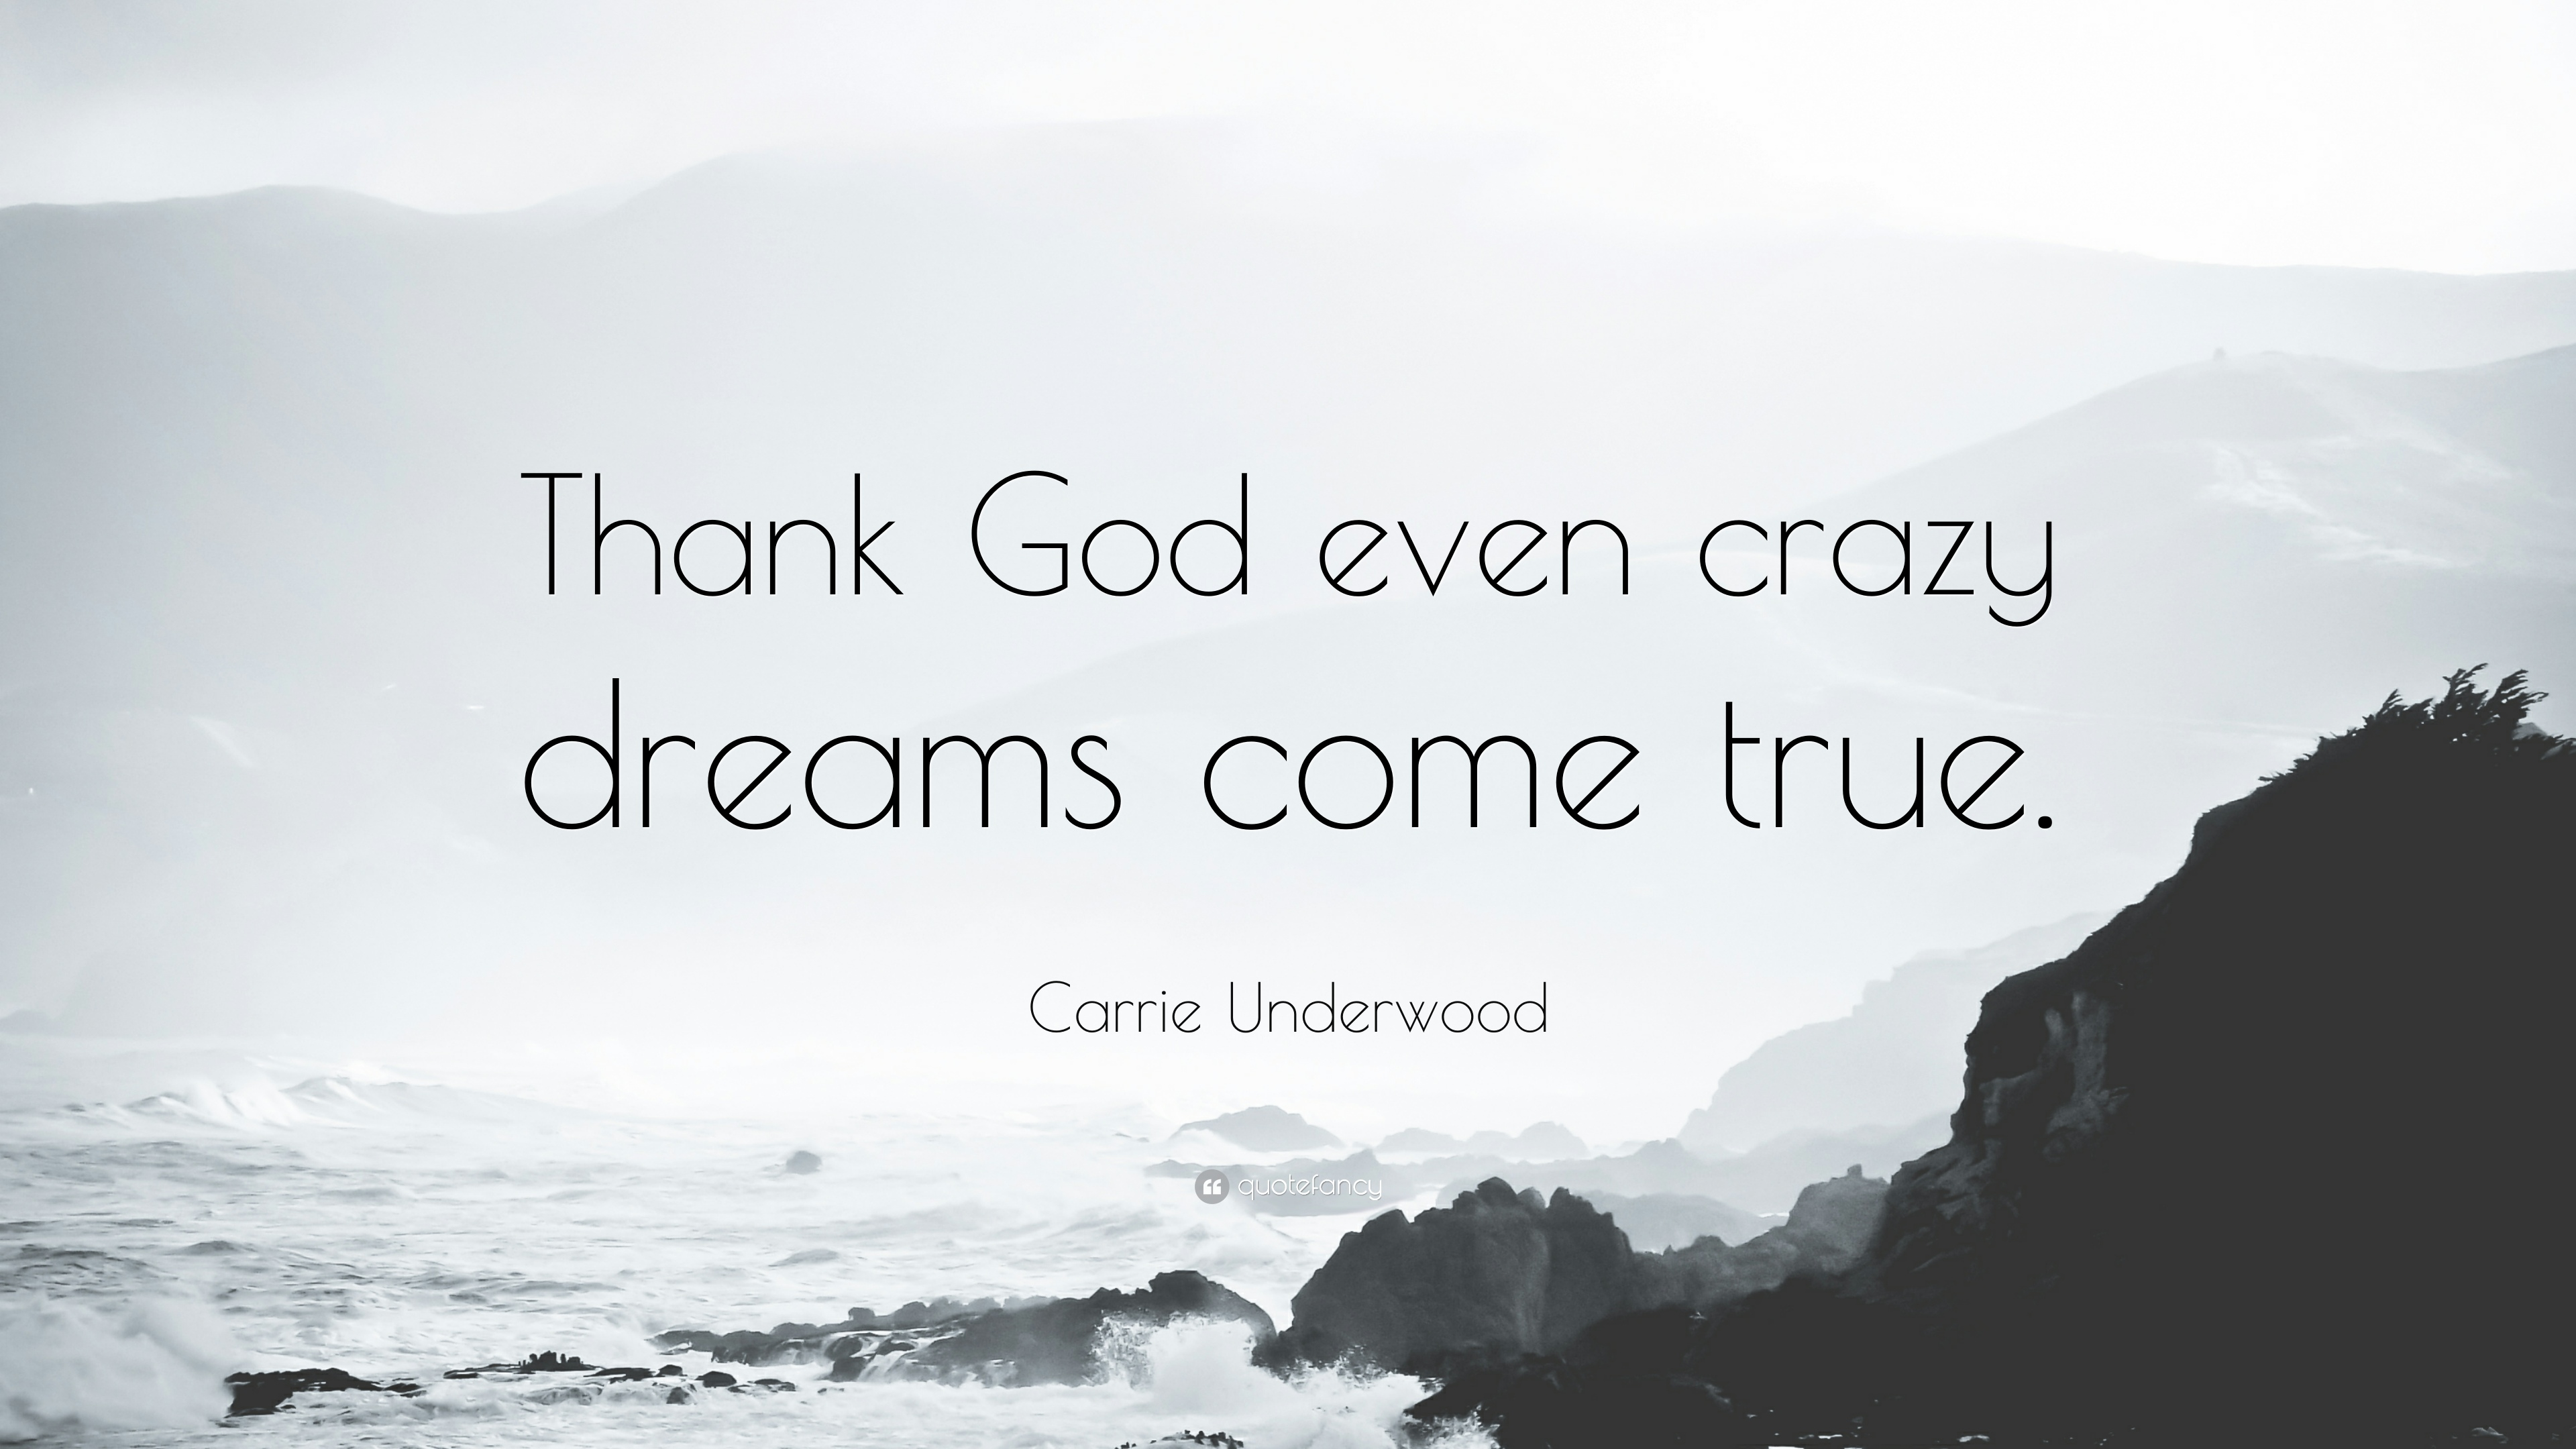 Carrie underwood quote thank god even crazy dreams come true 12 carrie underwood quote thank god even crazy dreams come true altavistaventures Images